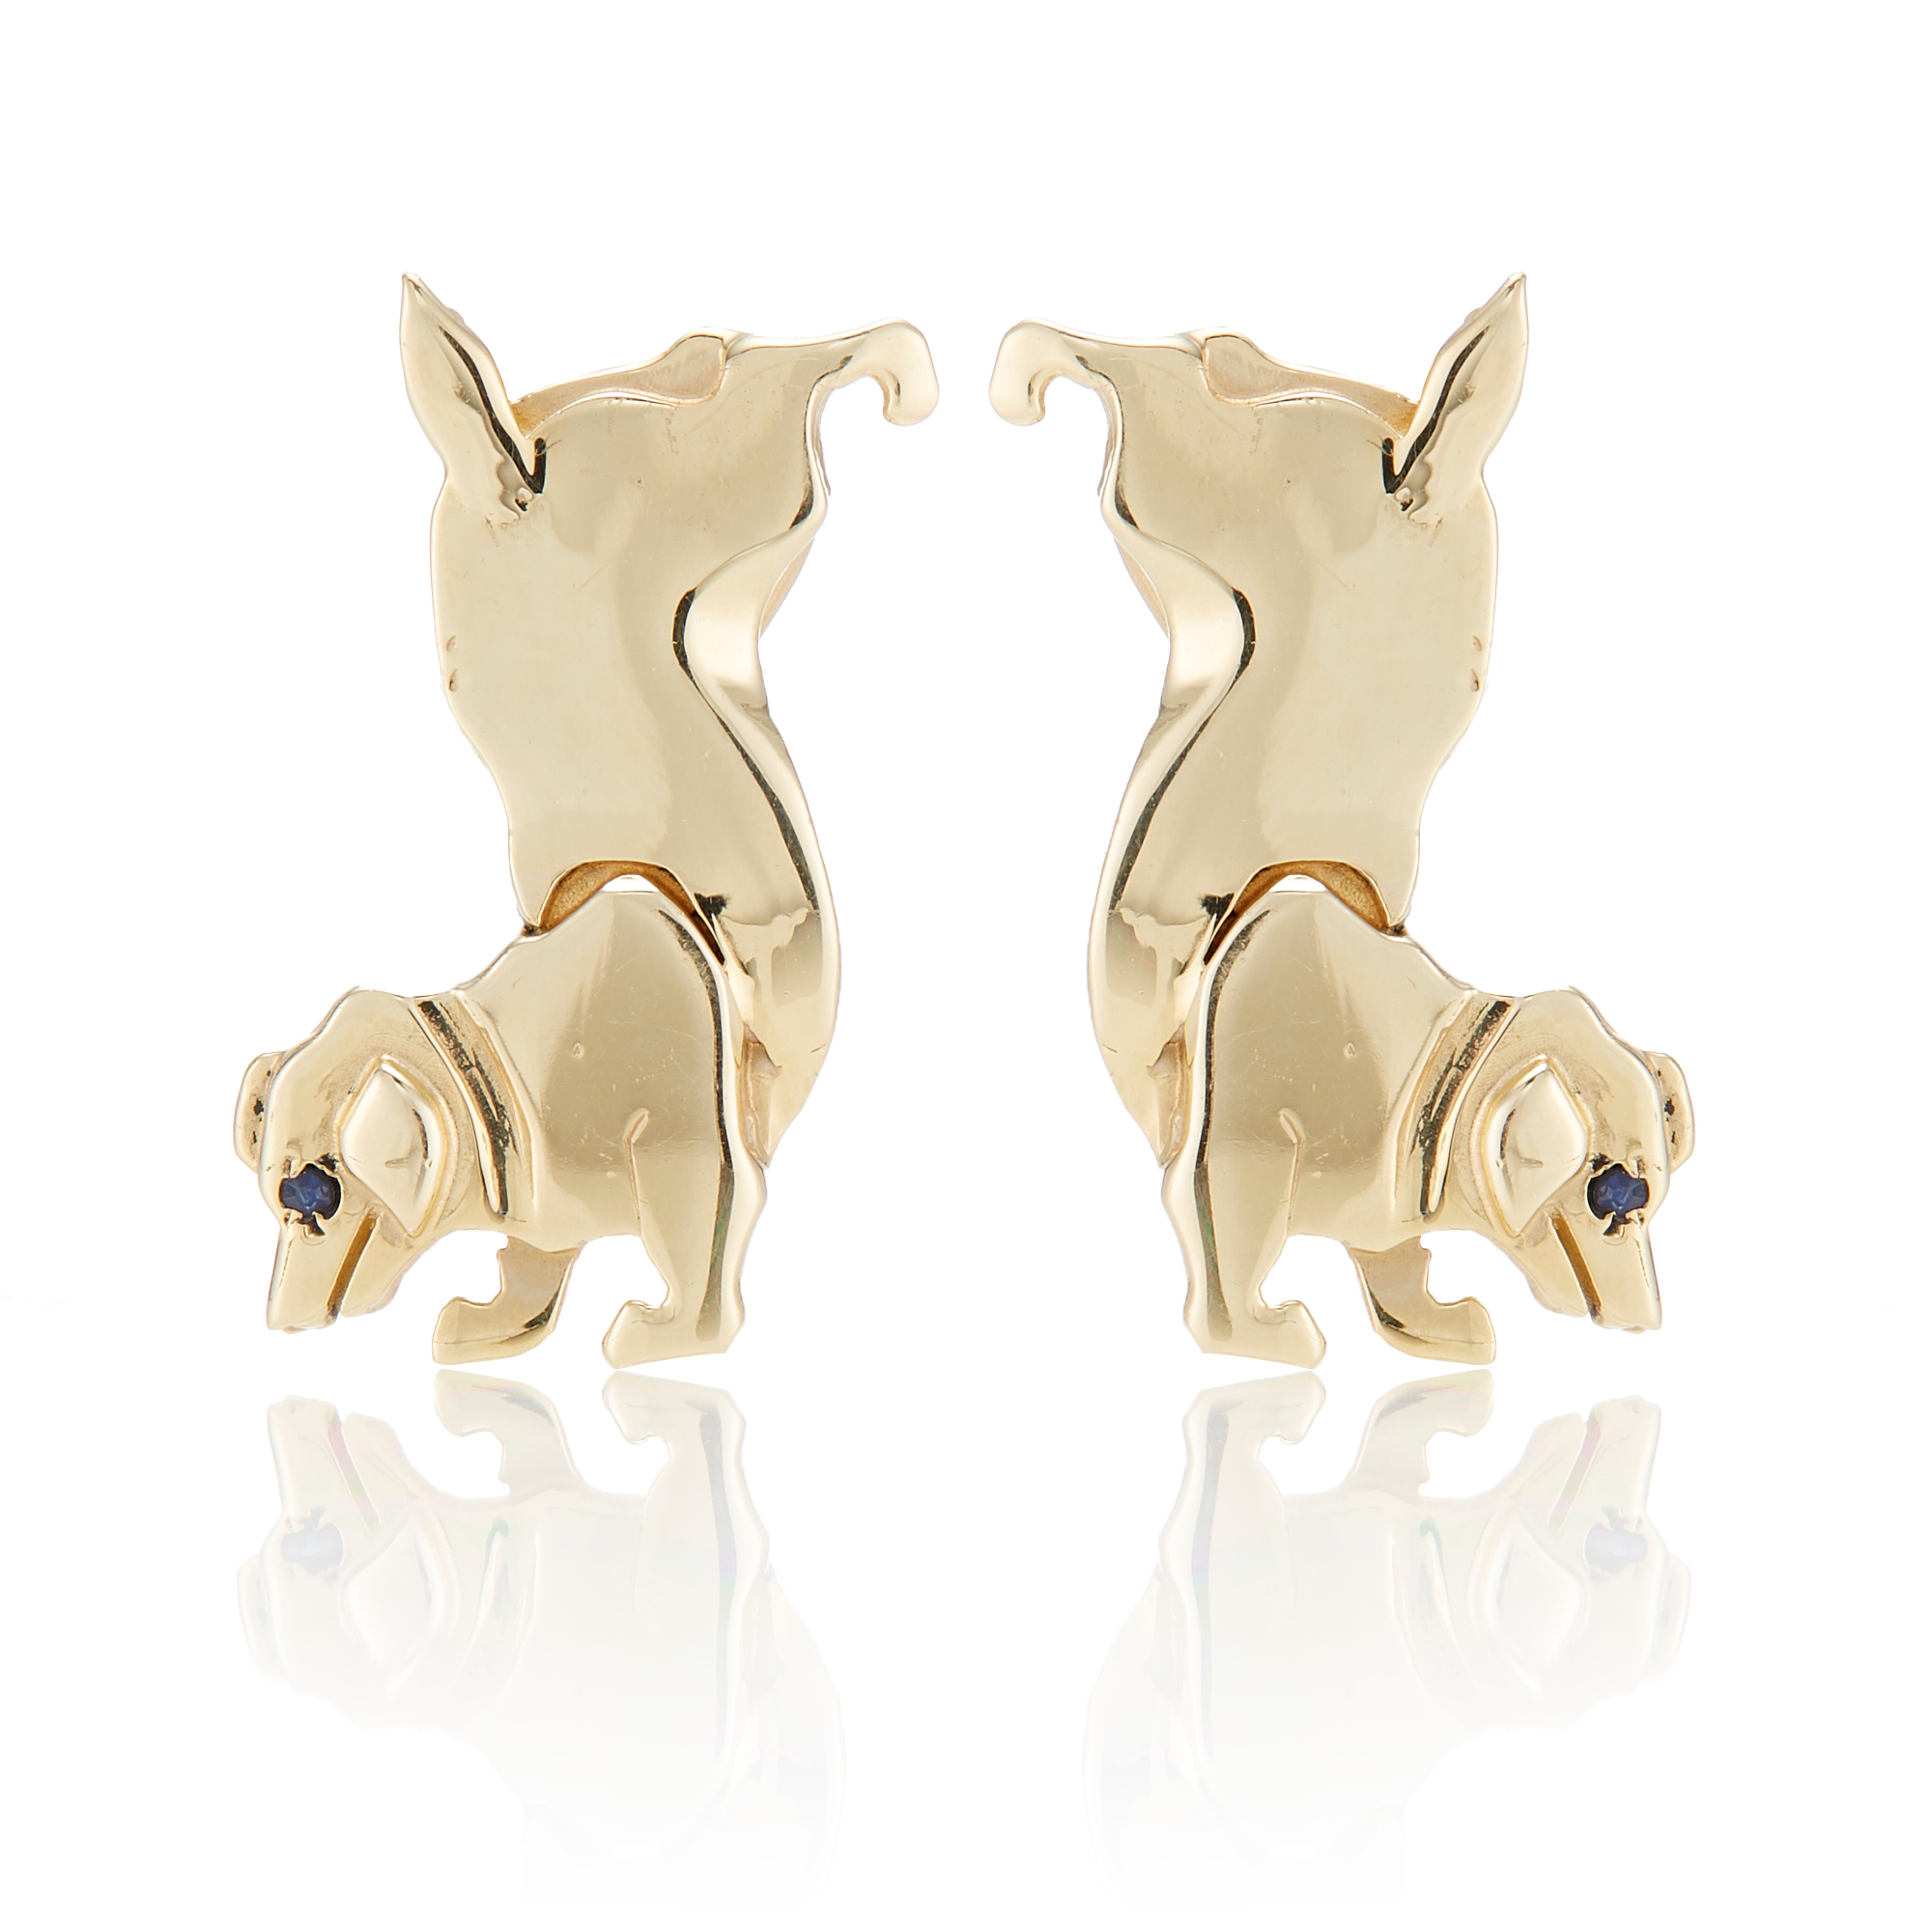 Mia Fonssagrives-Solow Polished Gold Jack Russell Handstand Earrings